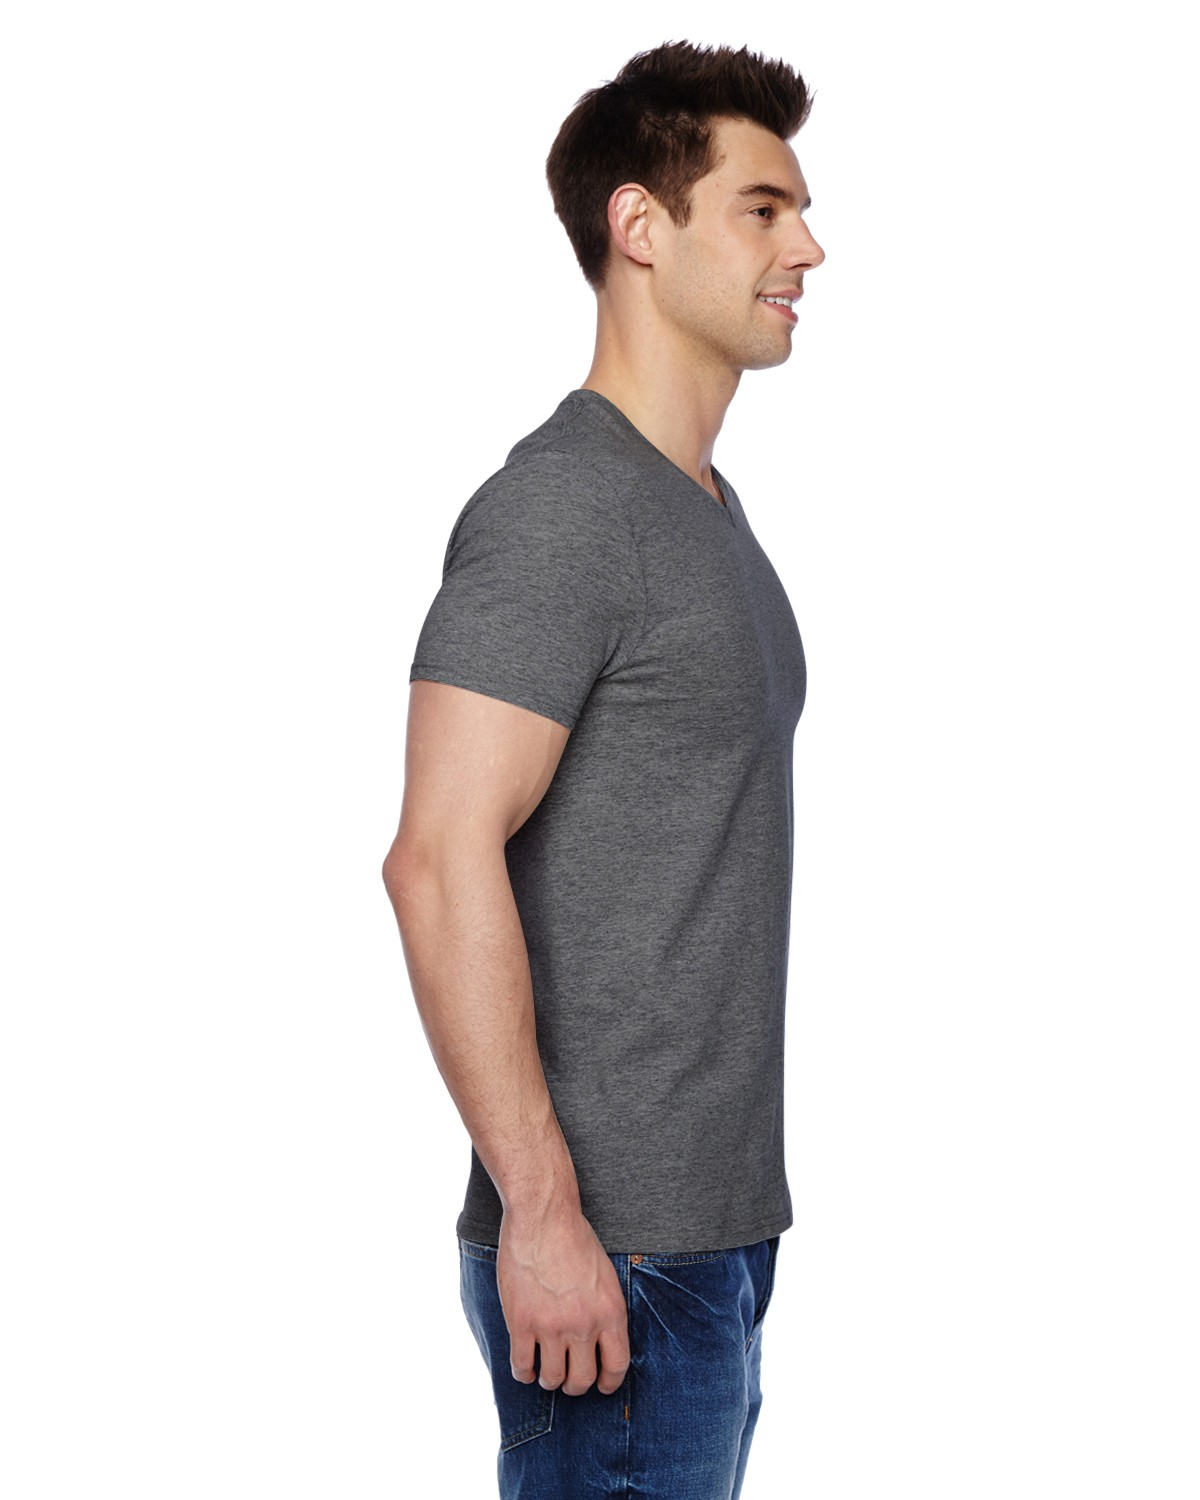 SFVR Fruit of the Loom CHARCOAL GREY